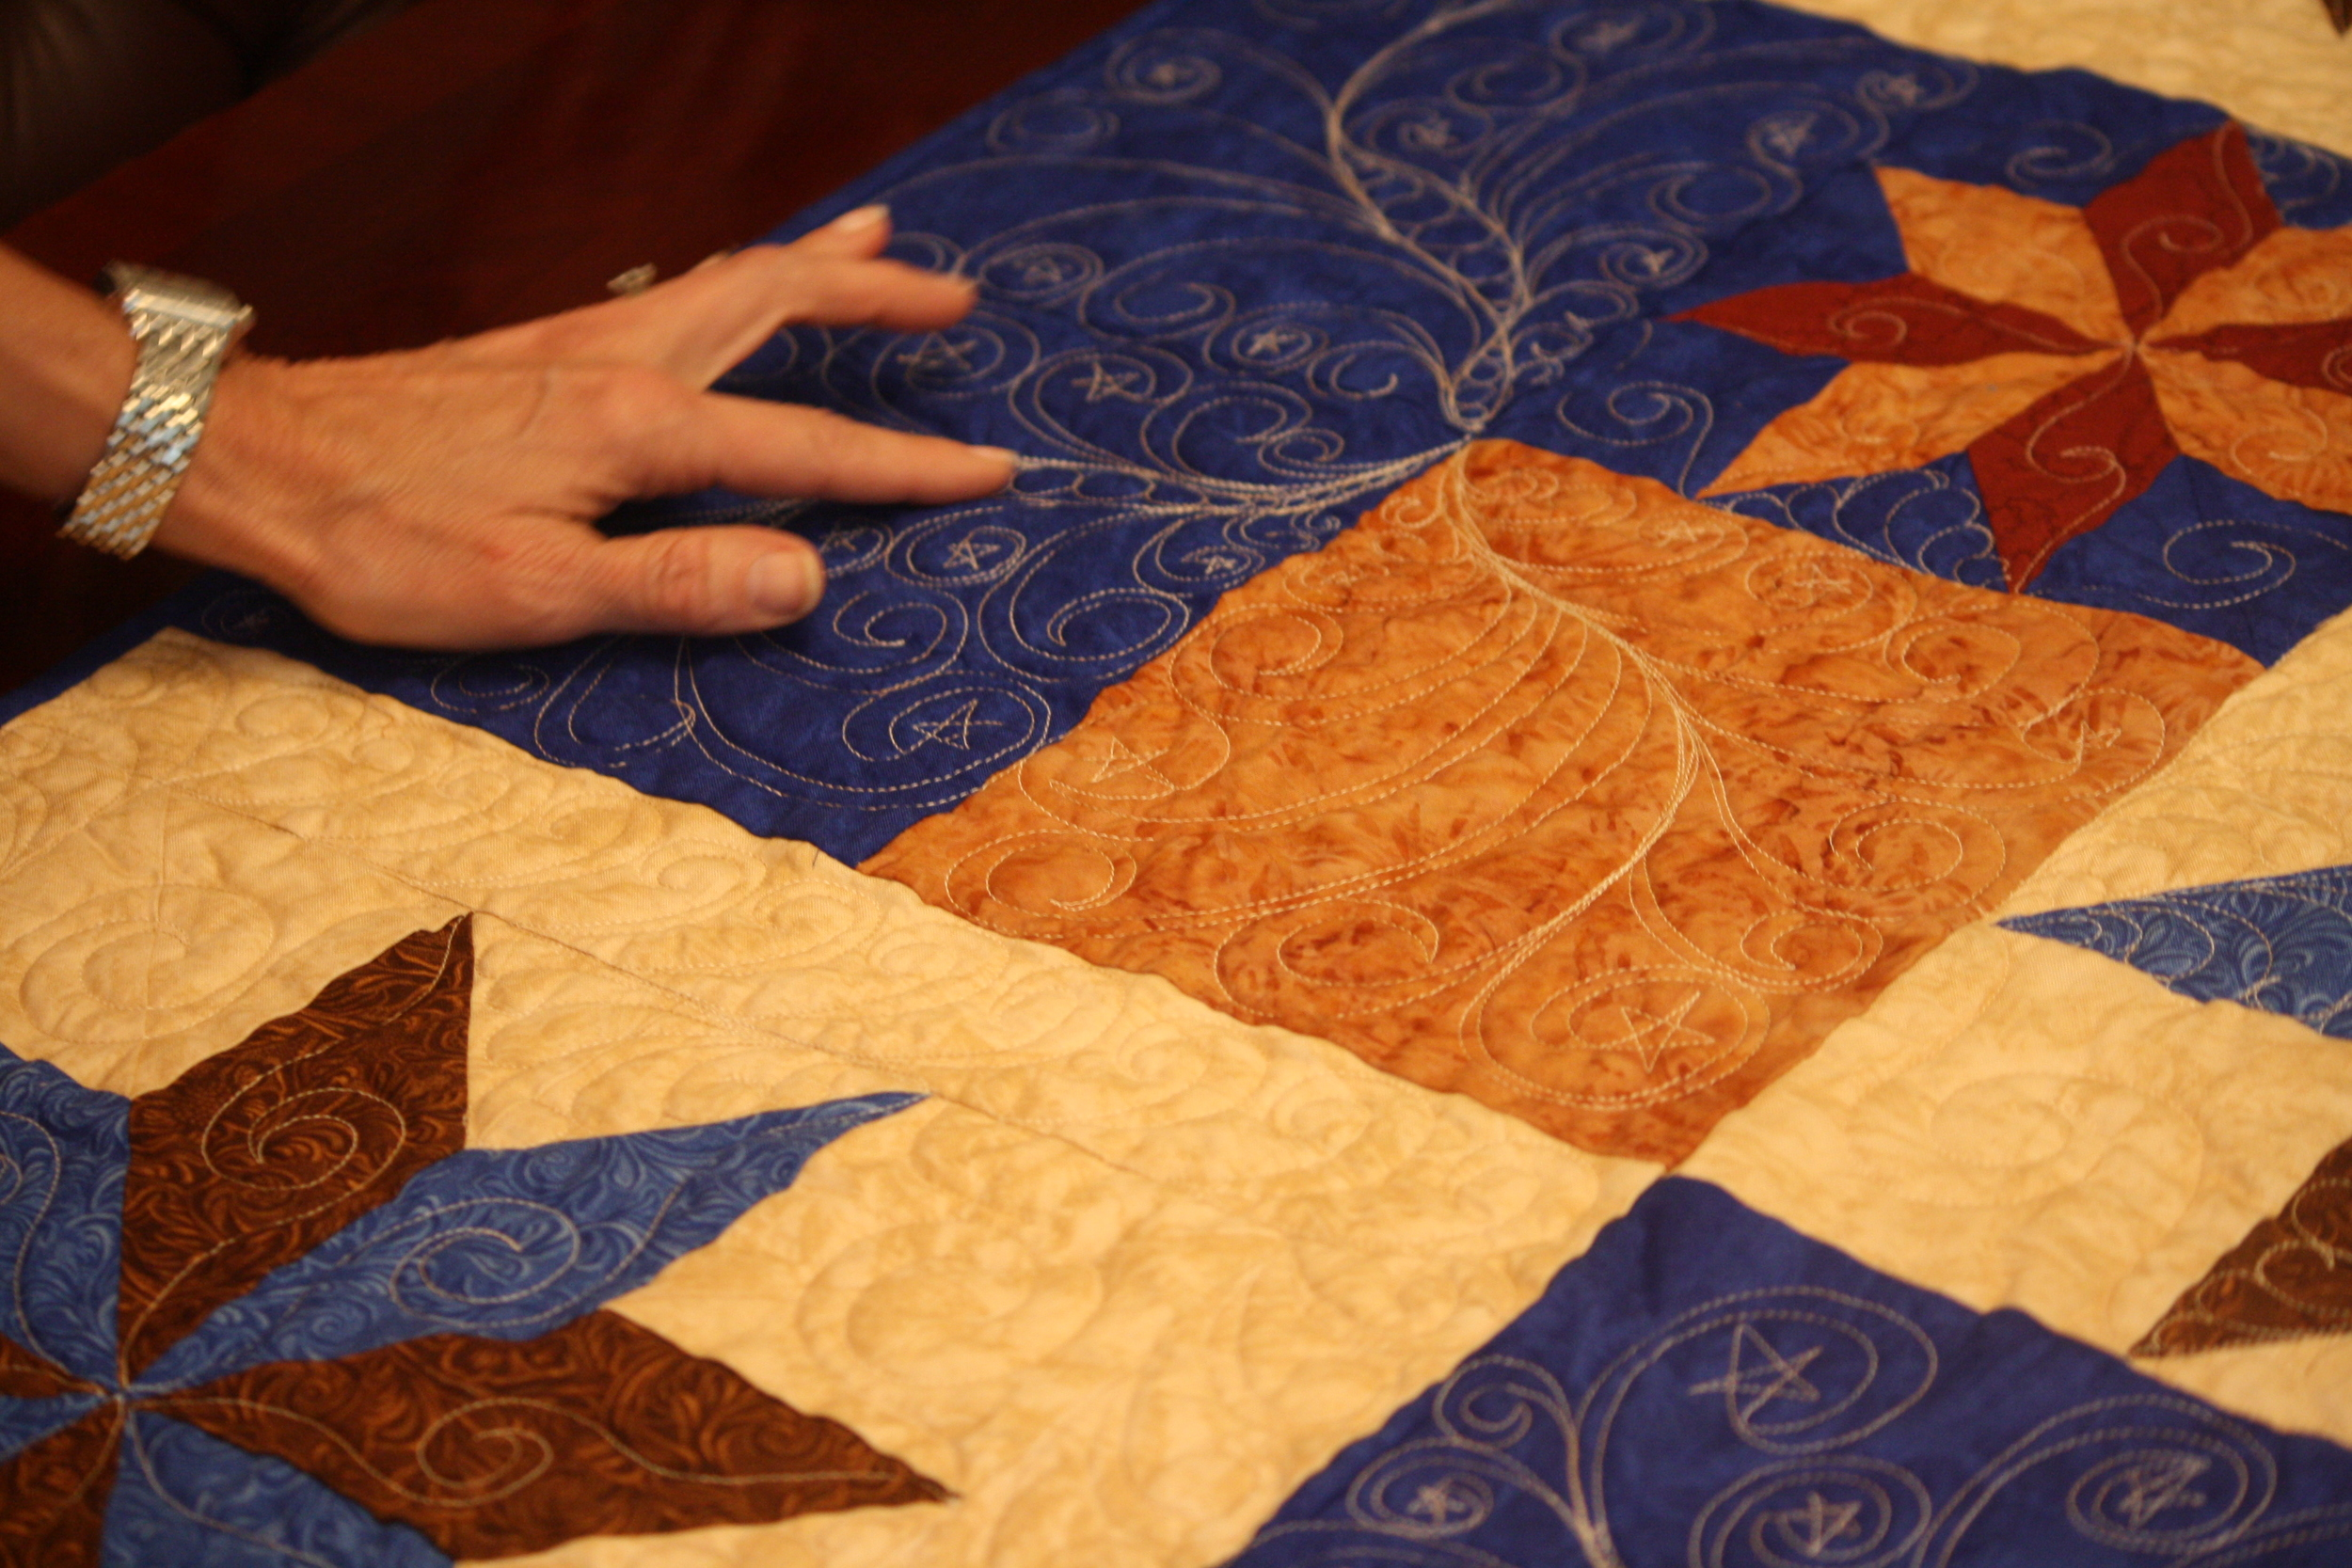 The intricate details on this quilt are magnificent!